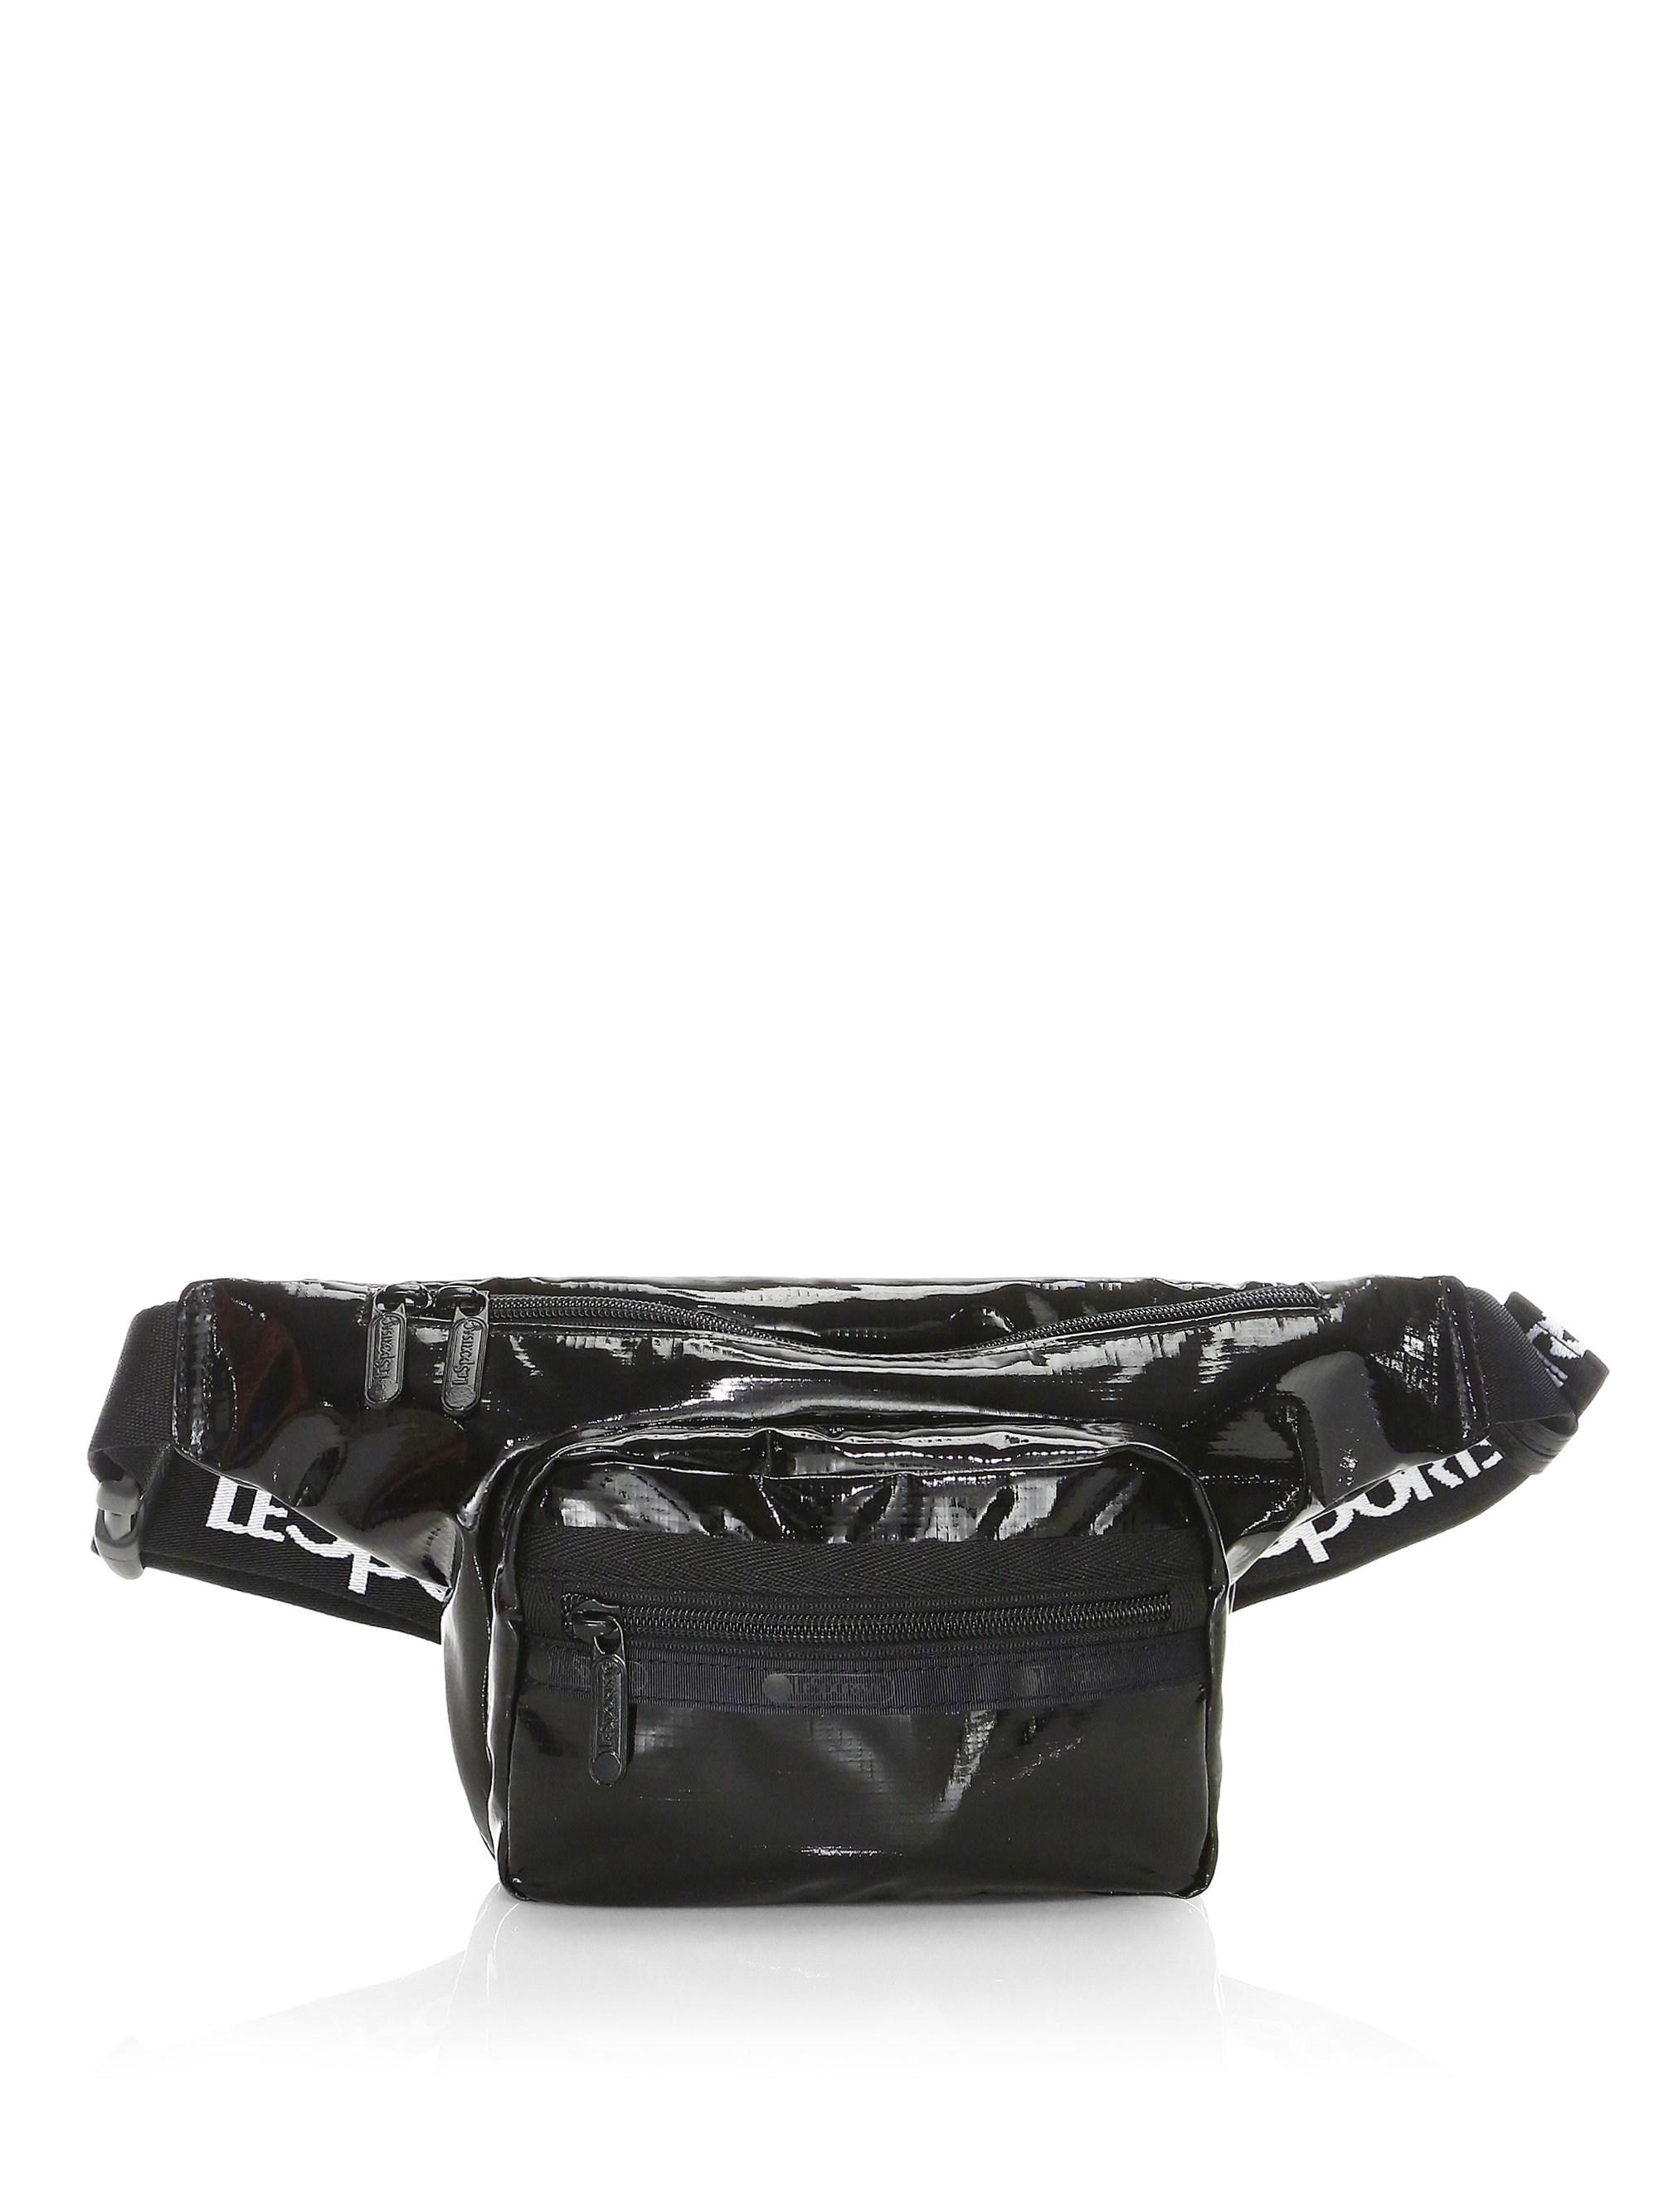 Lesportsac Women S Black Montana Shiny Belt Bag